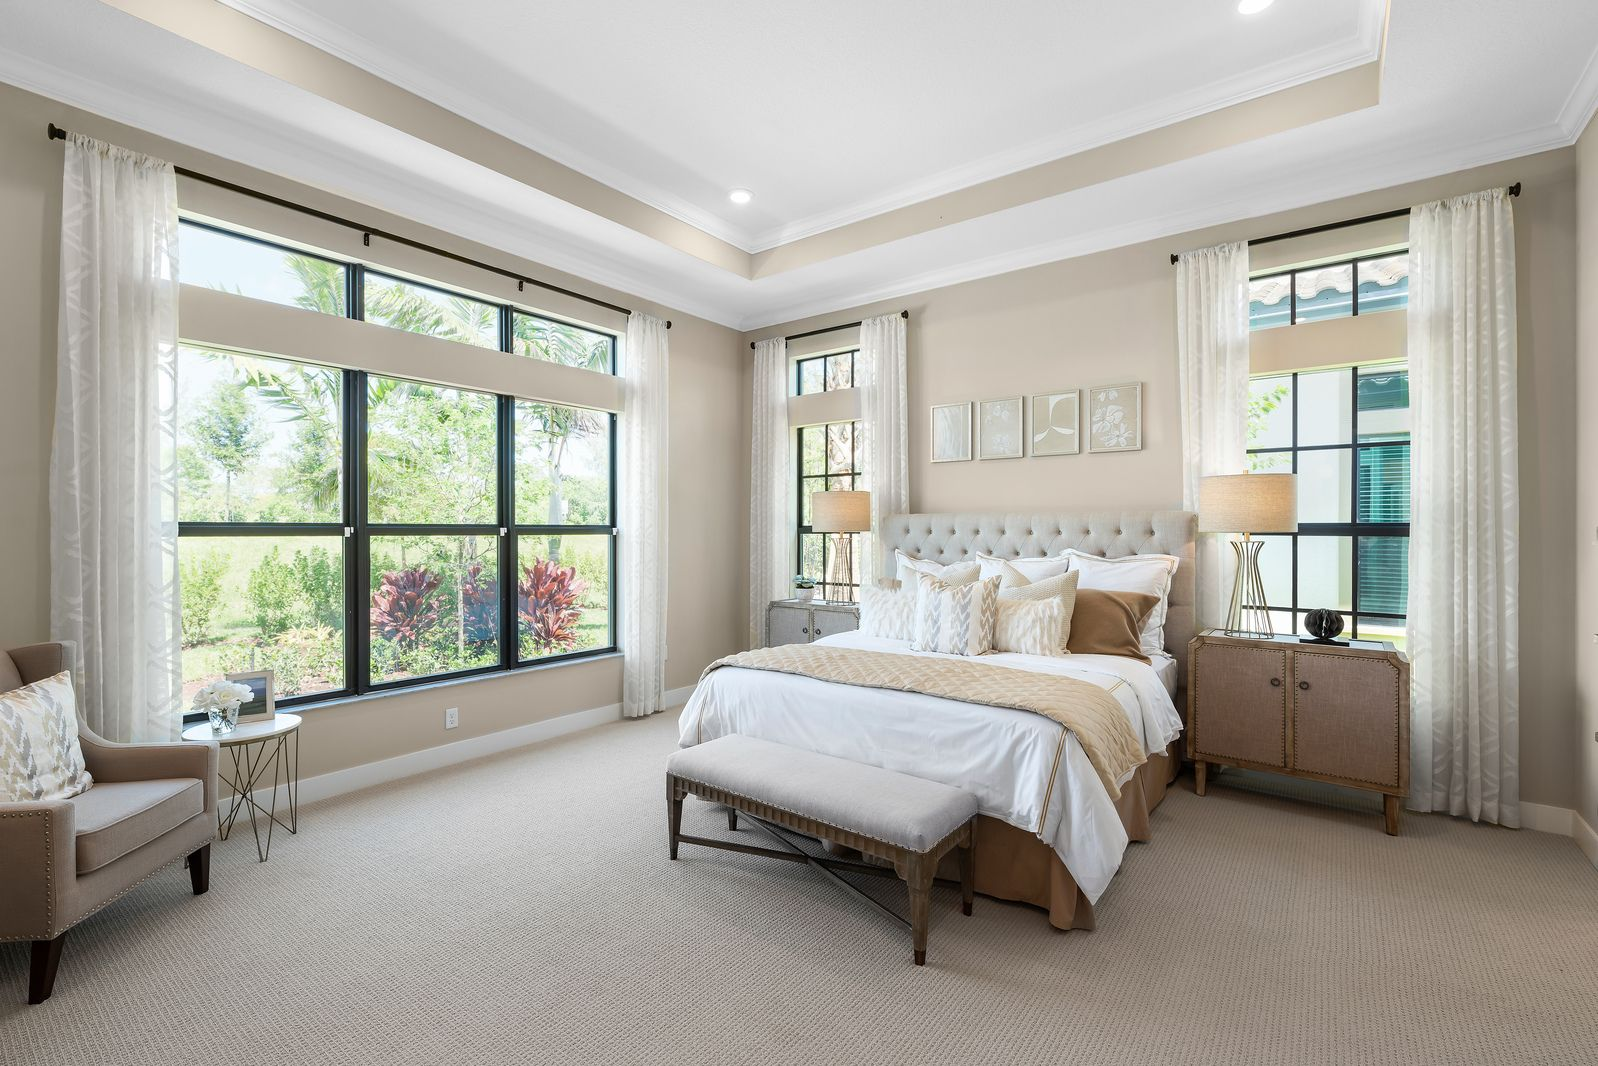 Bedroom featured in the Antigua Grande- The Whitehall Collection By Ryan Homes